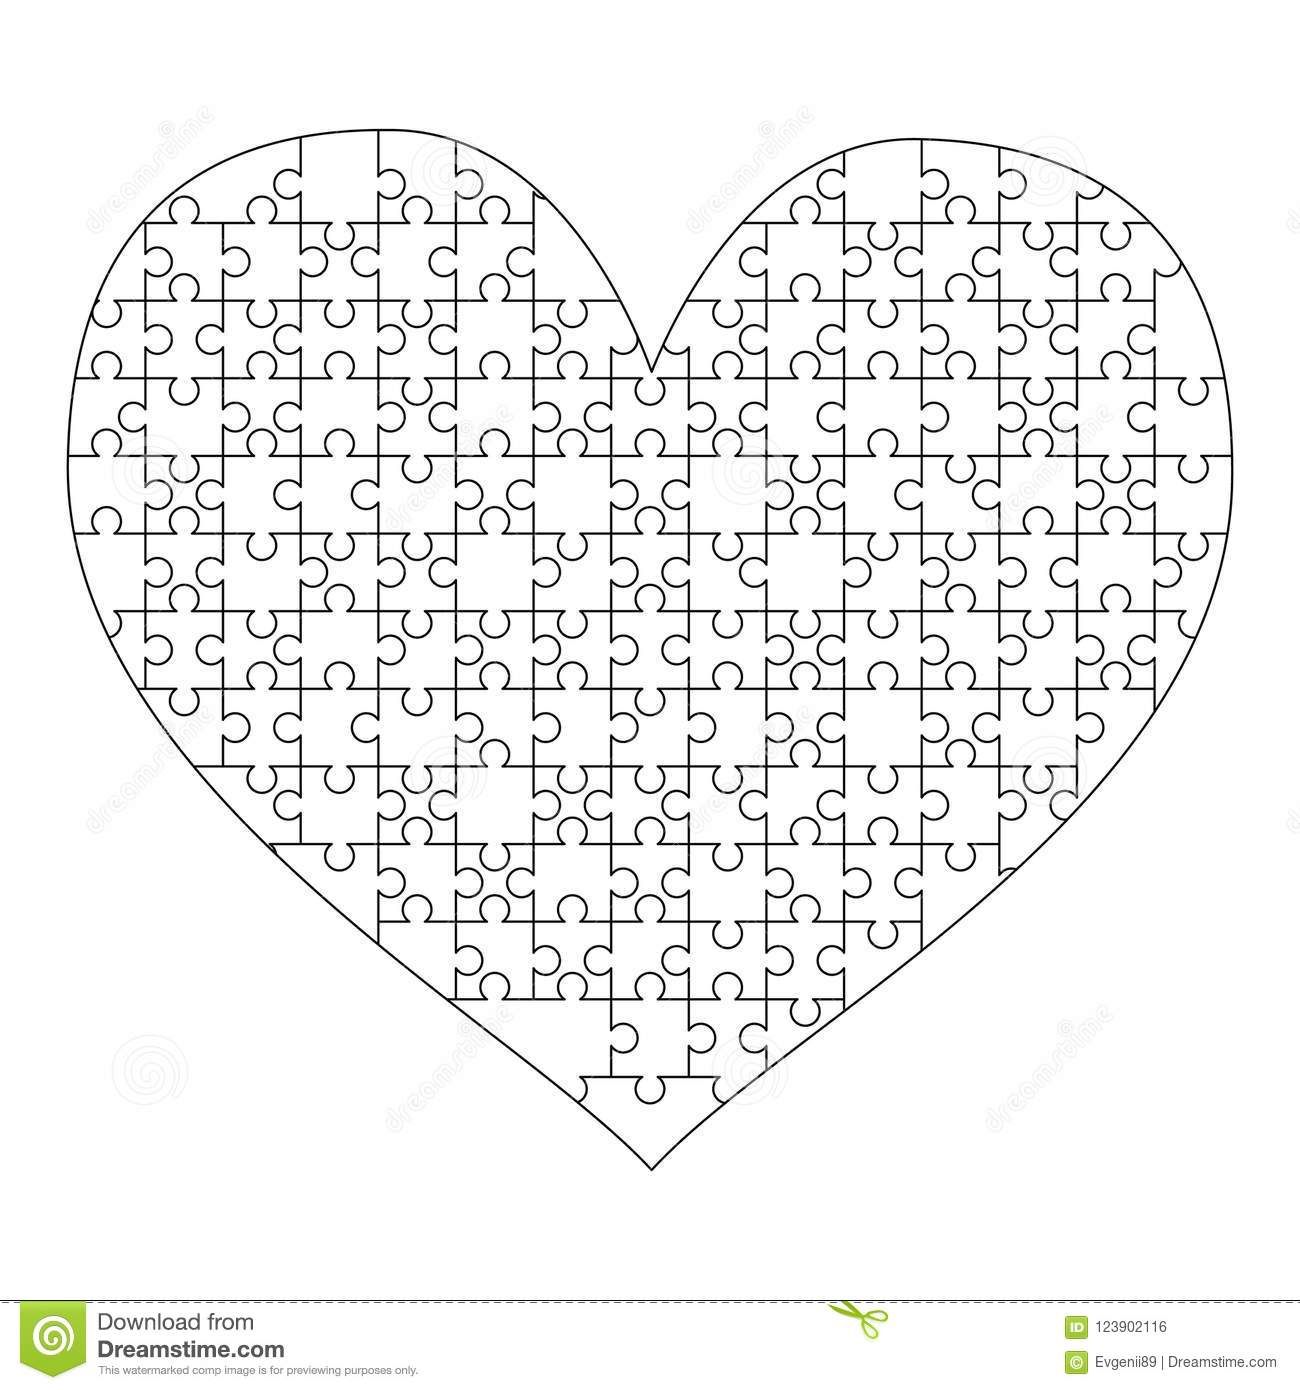 White Puzzles Pieces Arranged In A Heart Shape. Medium Jigsaw Puzzle - Printable Puzzle Heart